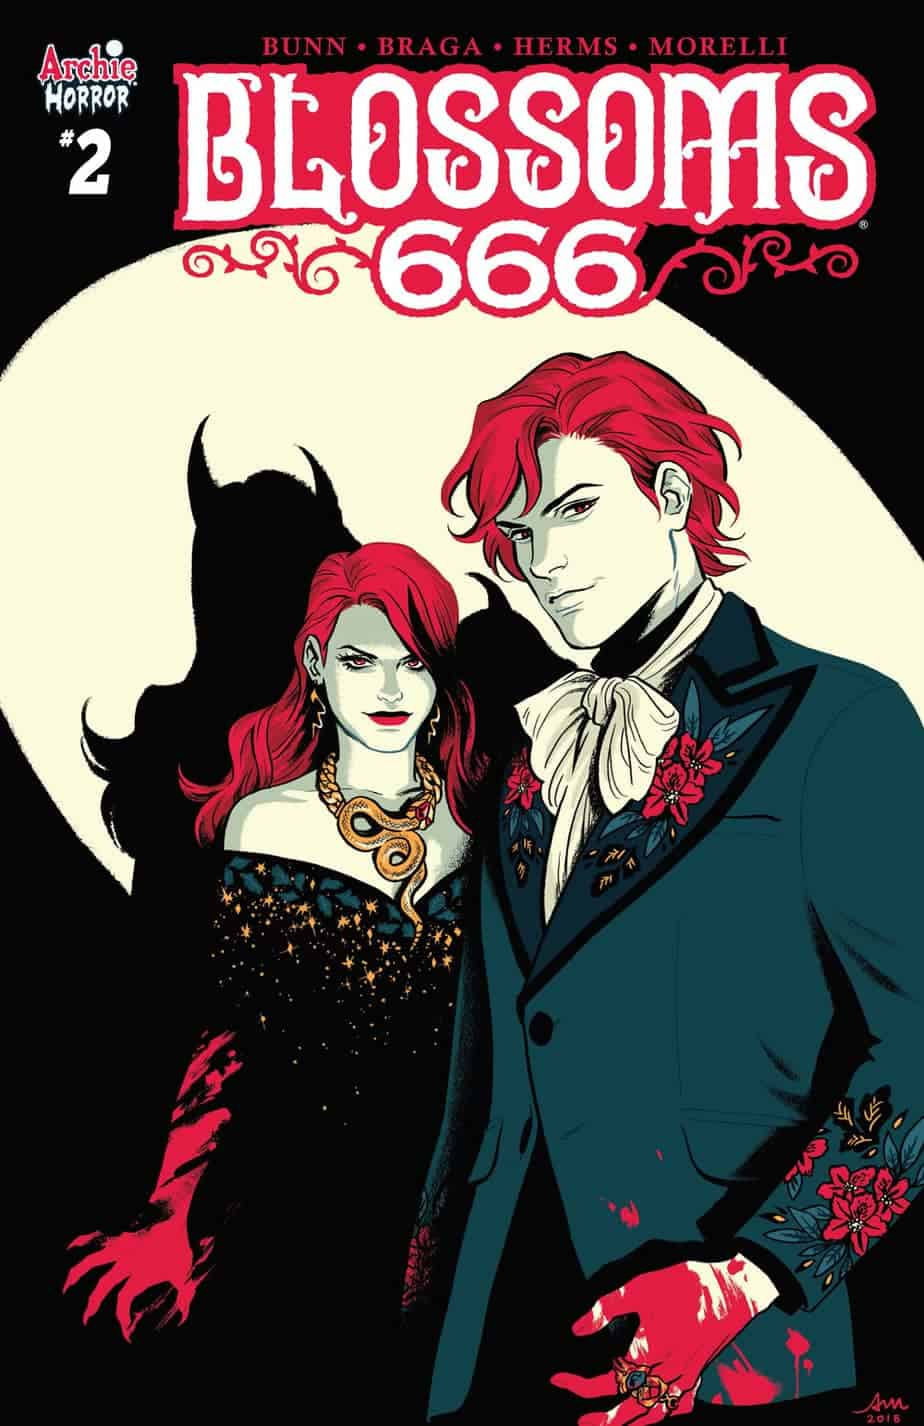 BLOSSOMS 666 #2 - Variant Cover by Audrey Mok